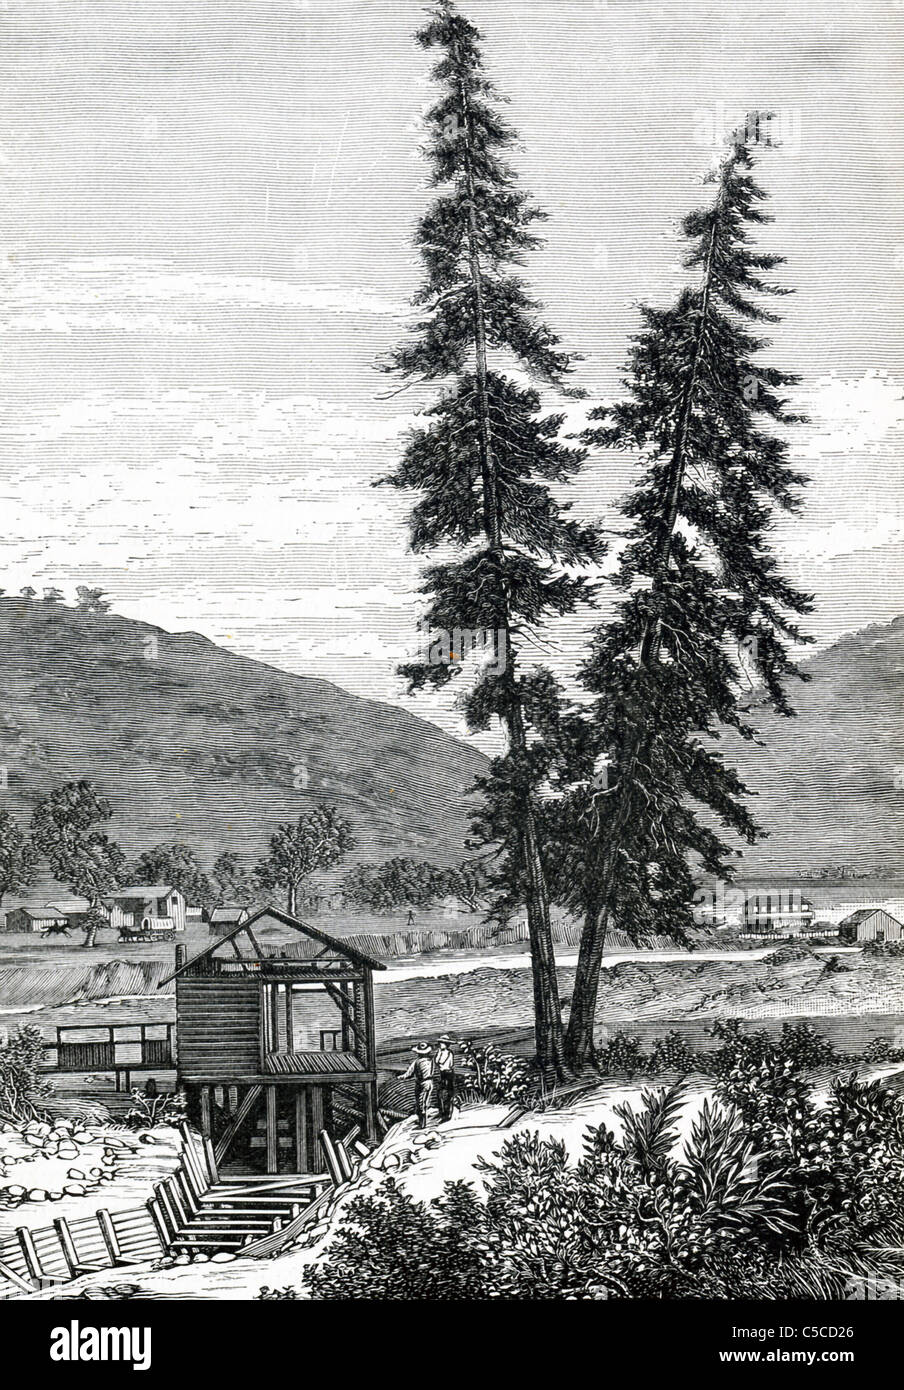 Sutter's Mill was also called Hoch Farm and it stood in the area of what is today Sacramento, California. - Stock Image